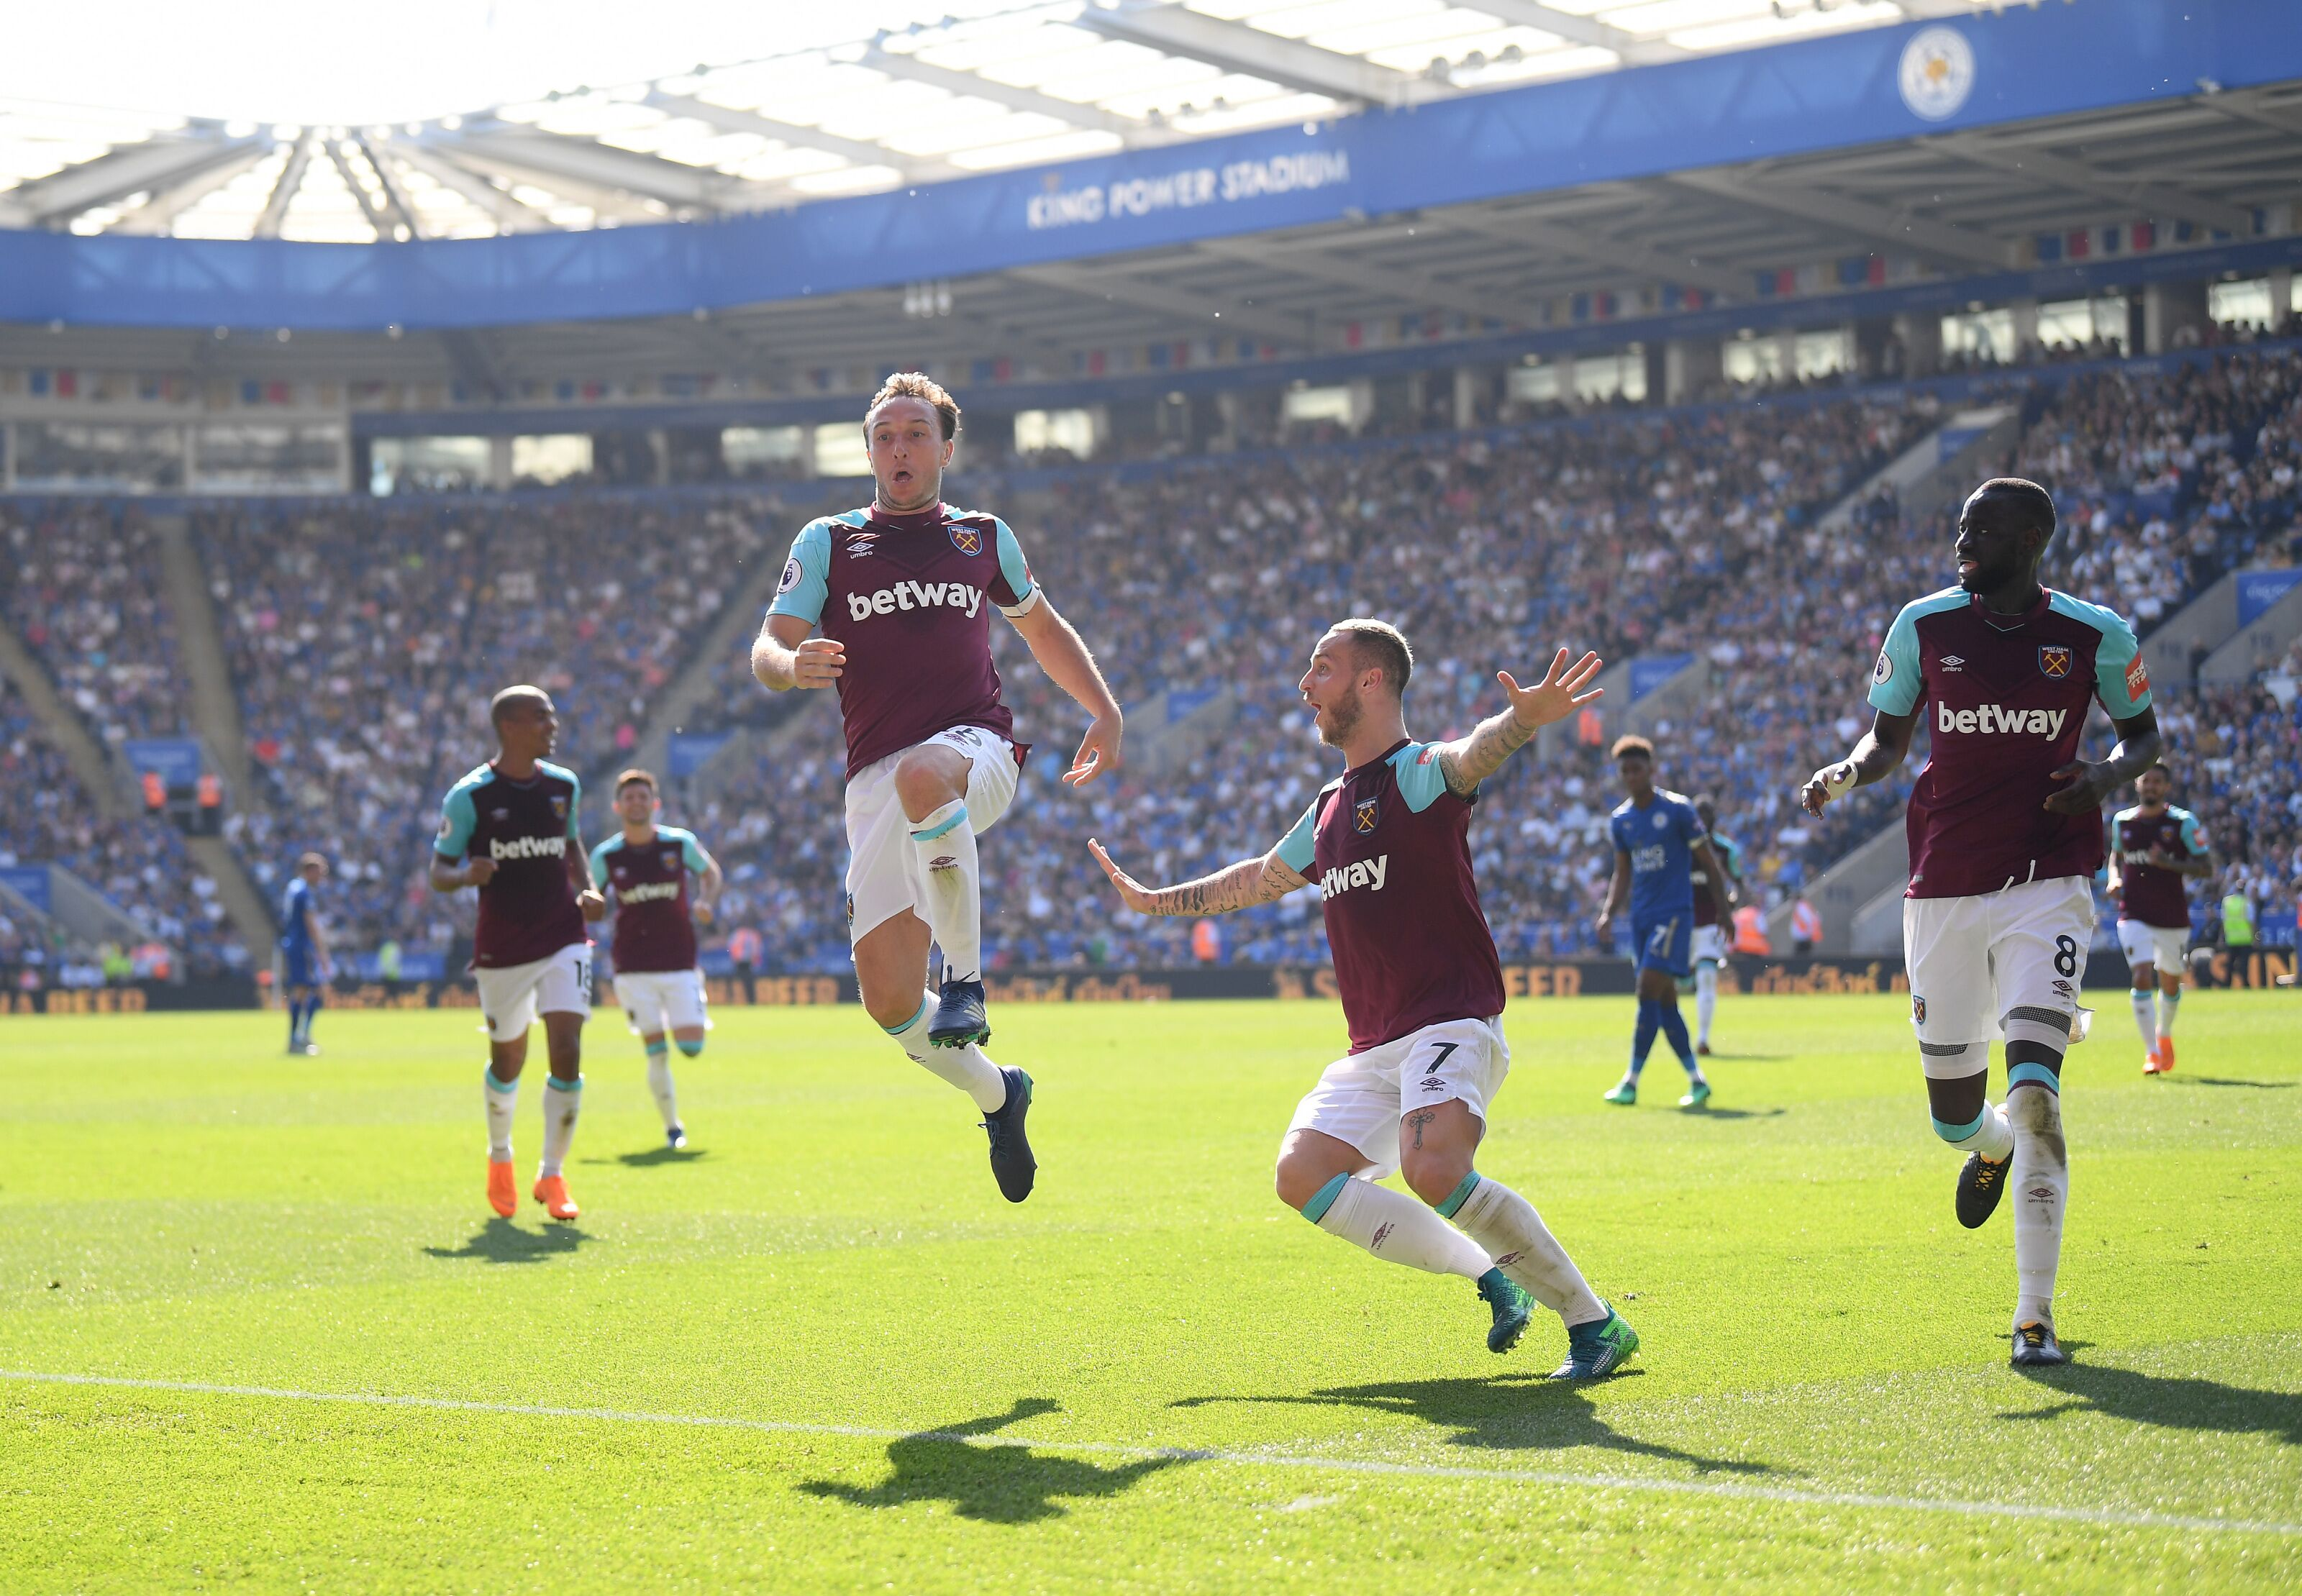 leicester city vs west ham - photo #50